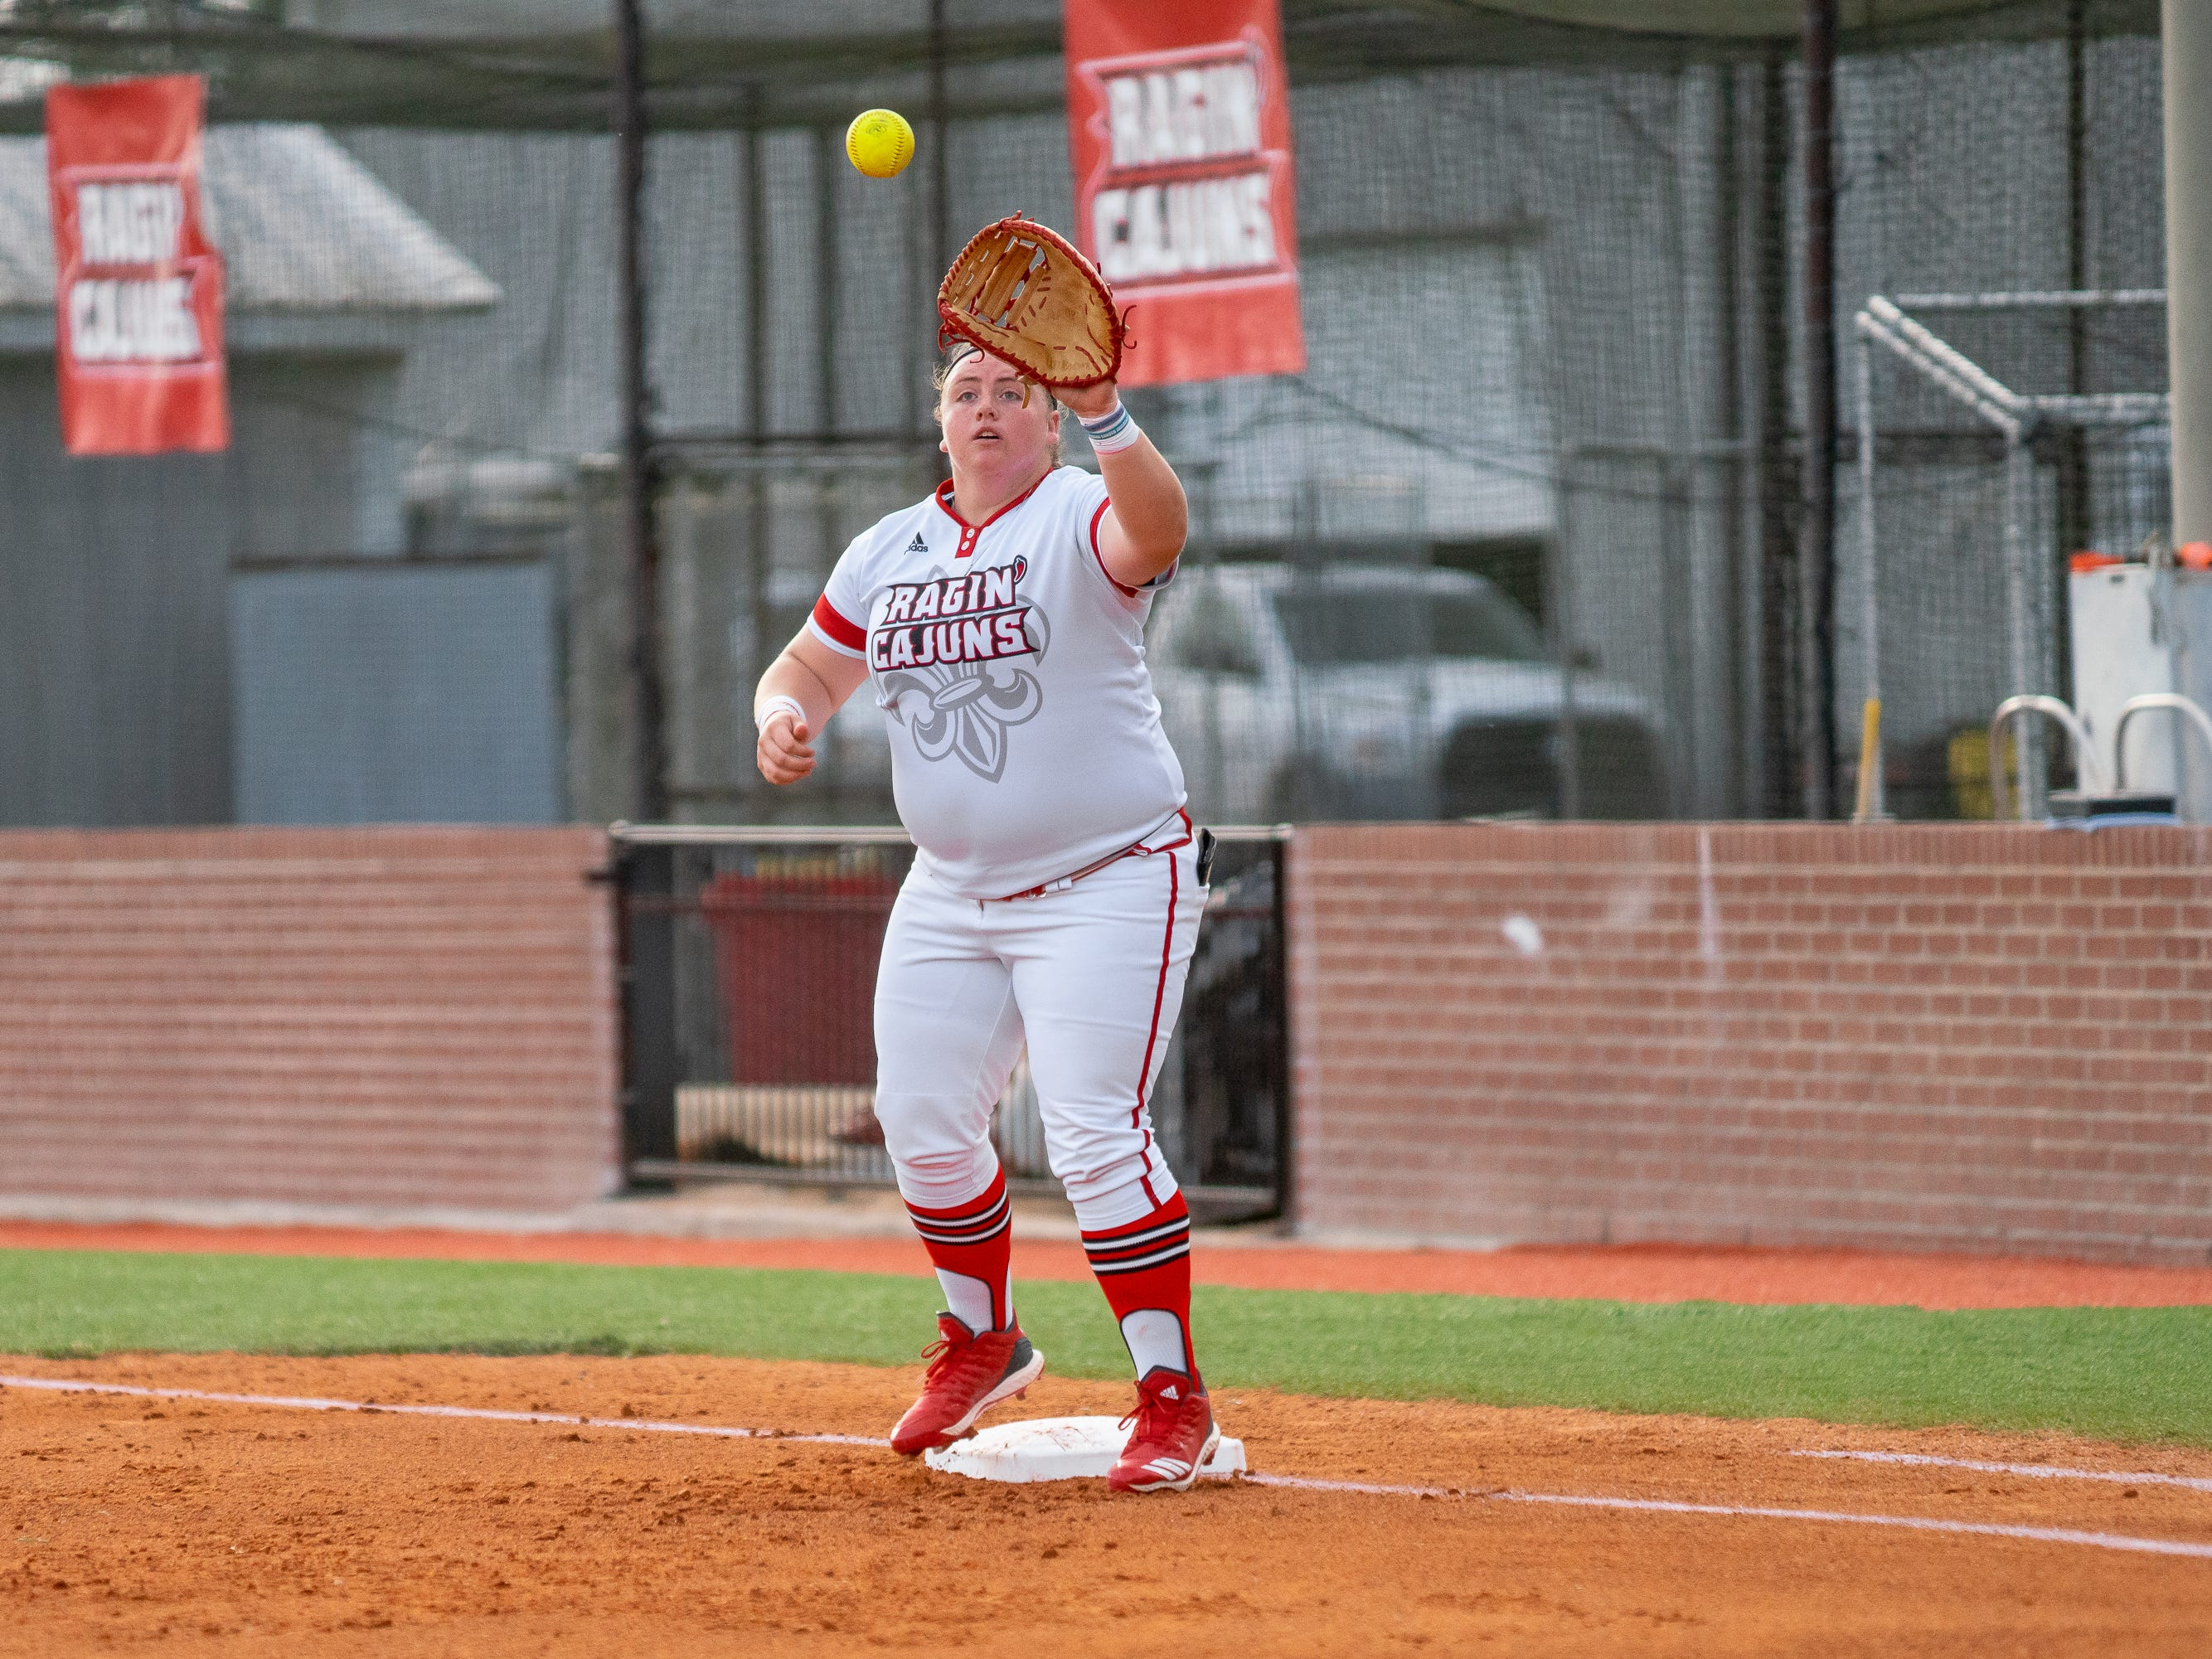 UL's Bailey Curry makes a catch at first base as the Ragin' Cajuns play against the California Golden Bears at Lamson Park on February 11, 2019.